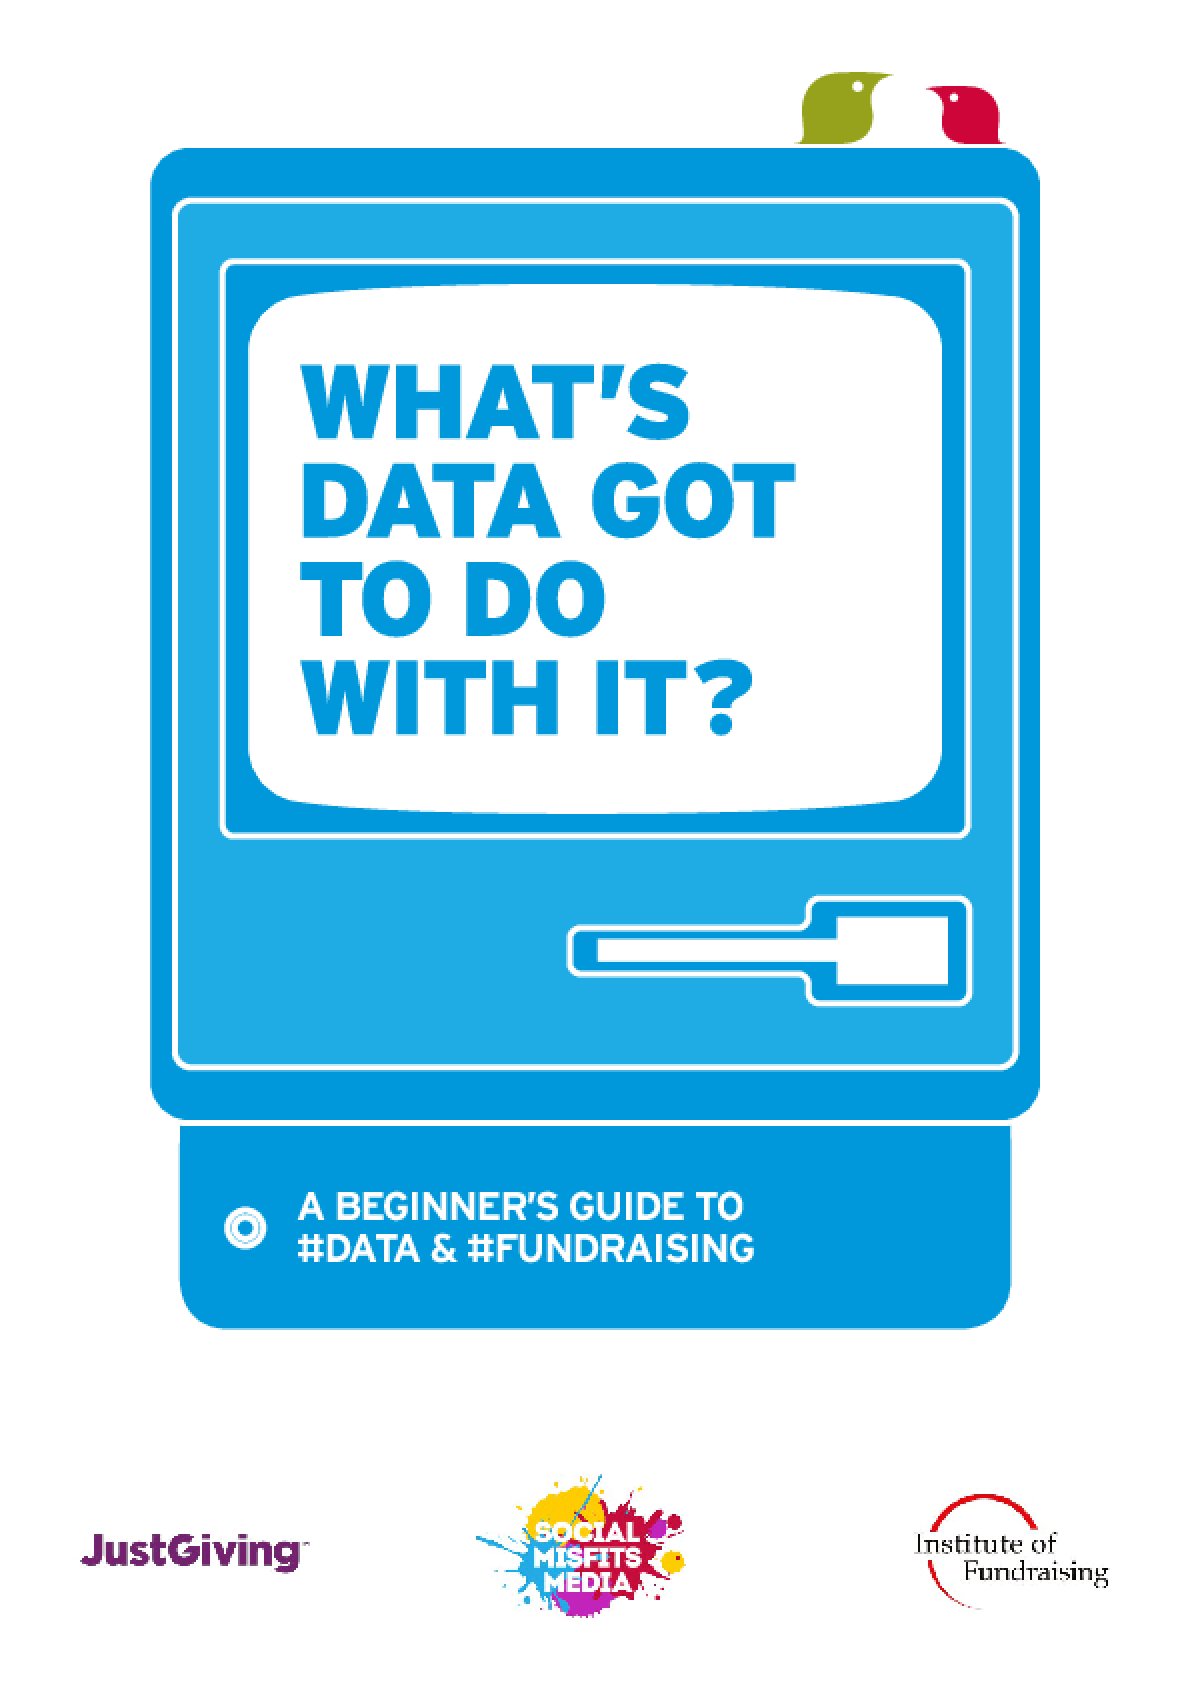 What's Data Got To Do With It?